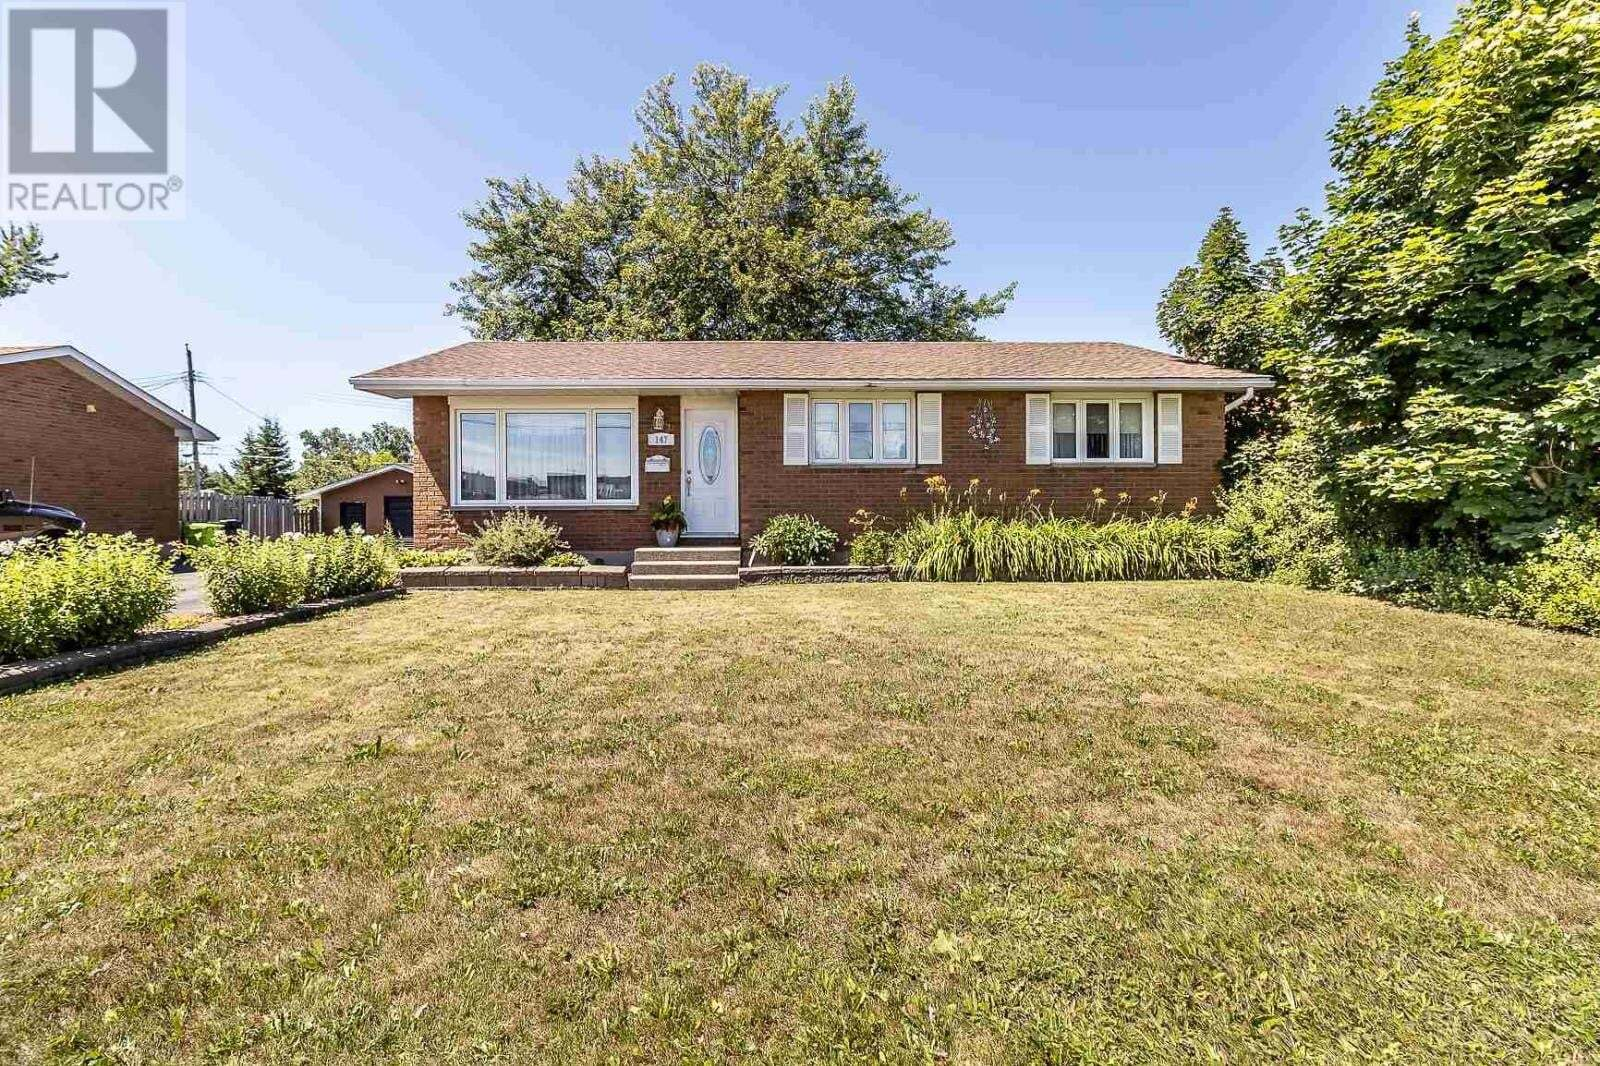 House for sale at 147 Sackville Rd Sault Ste. Marie Ontario - MLS: SM129310